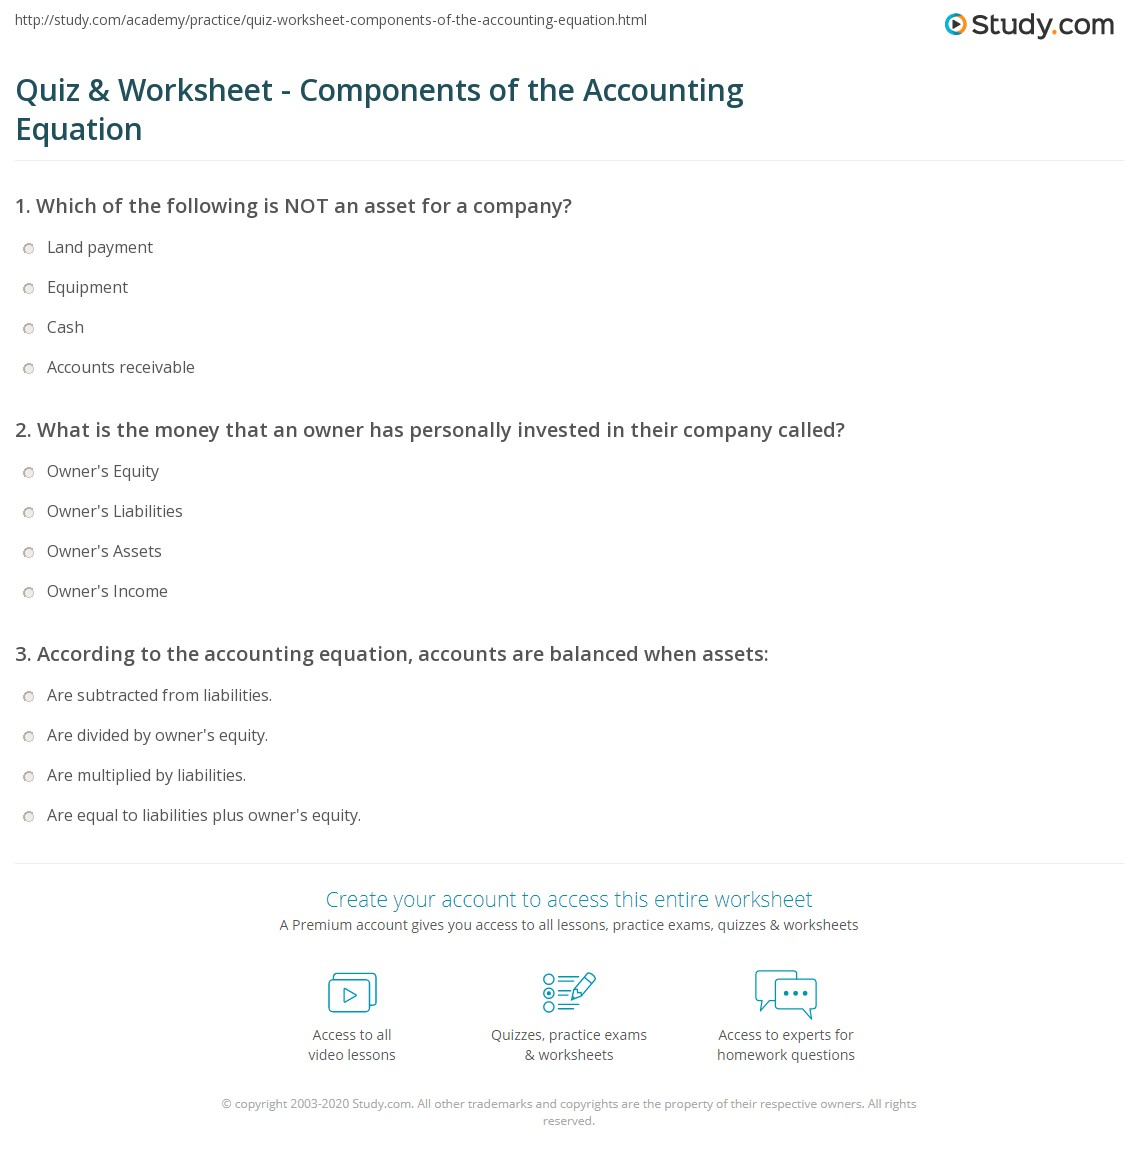 30 Expanded Accounting Equation Worksheet